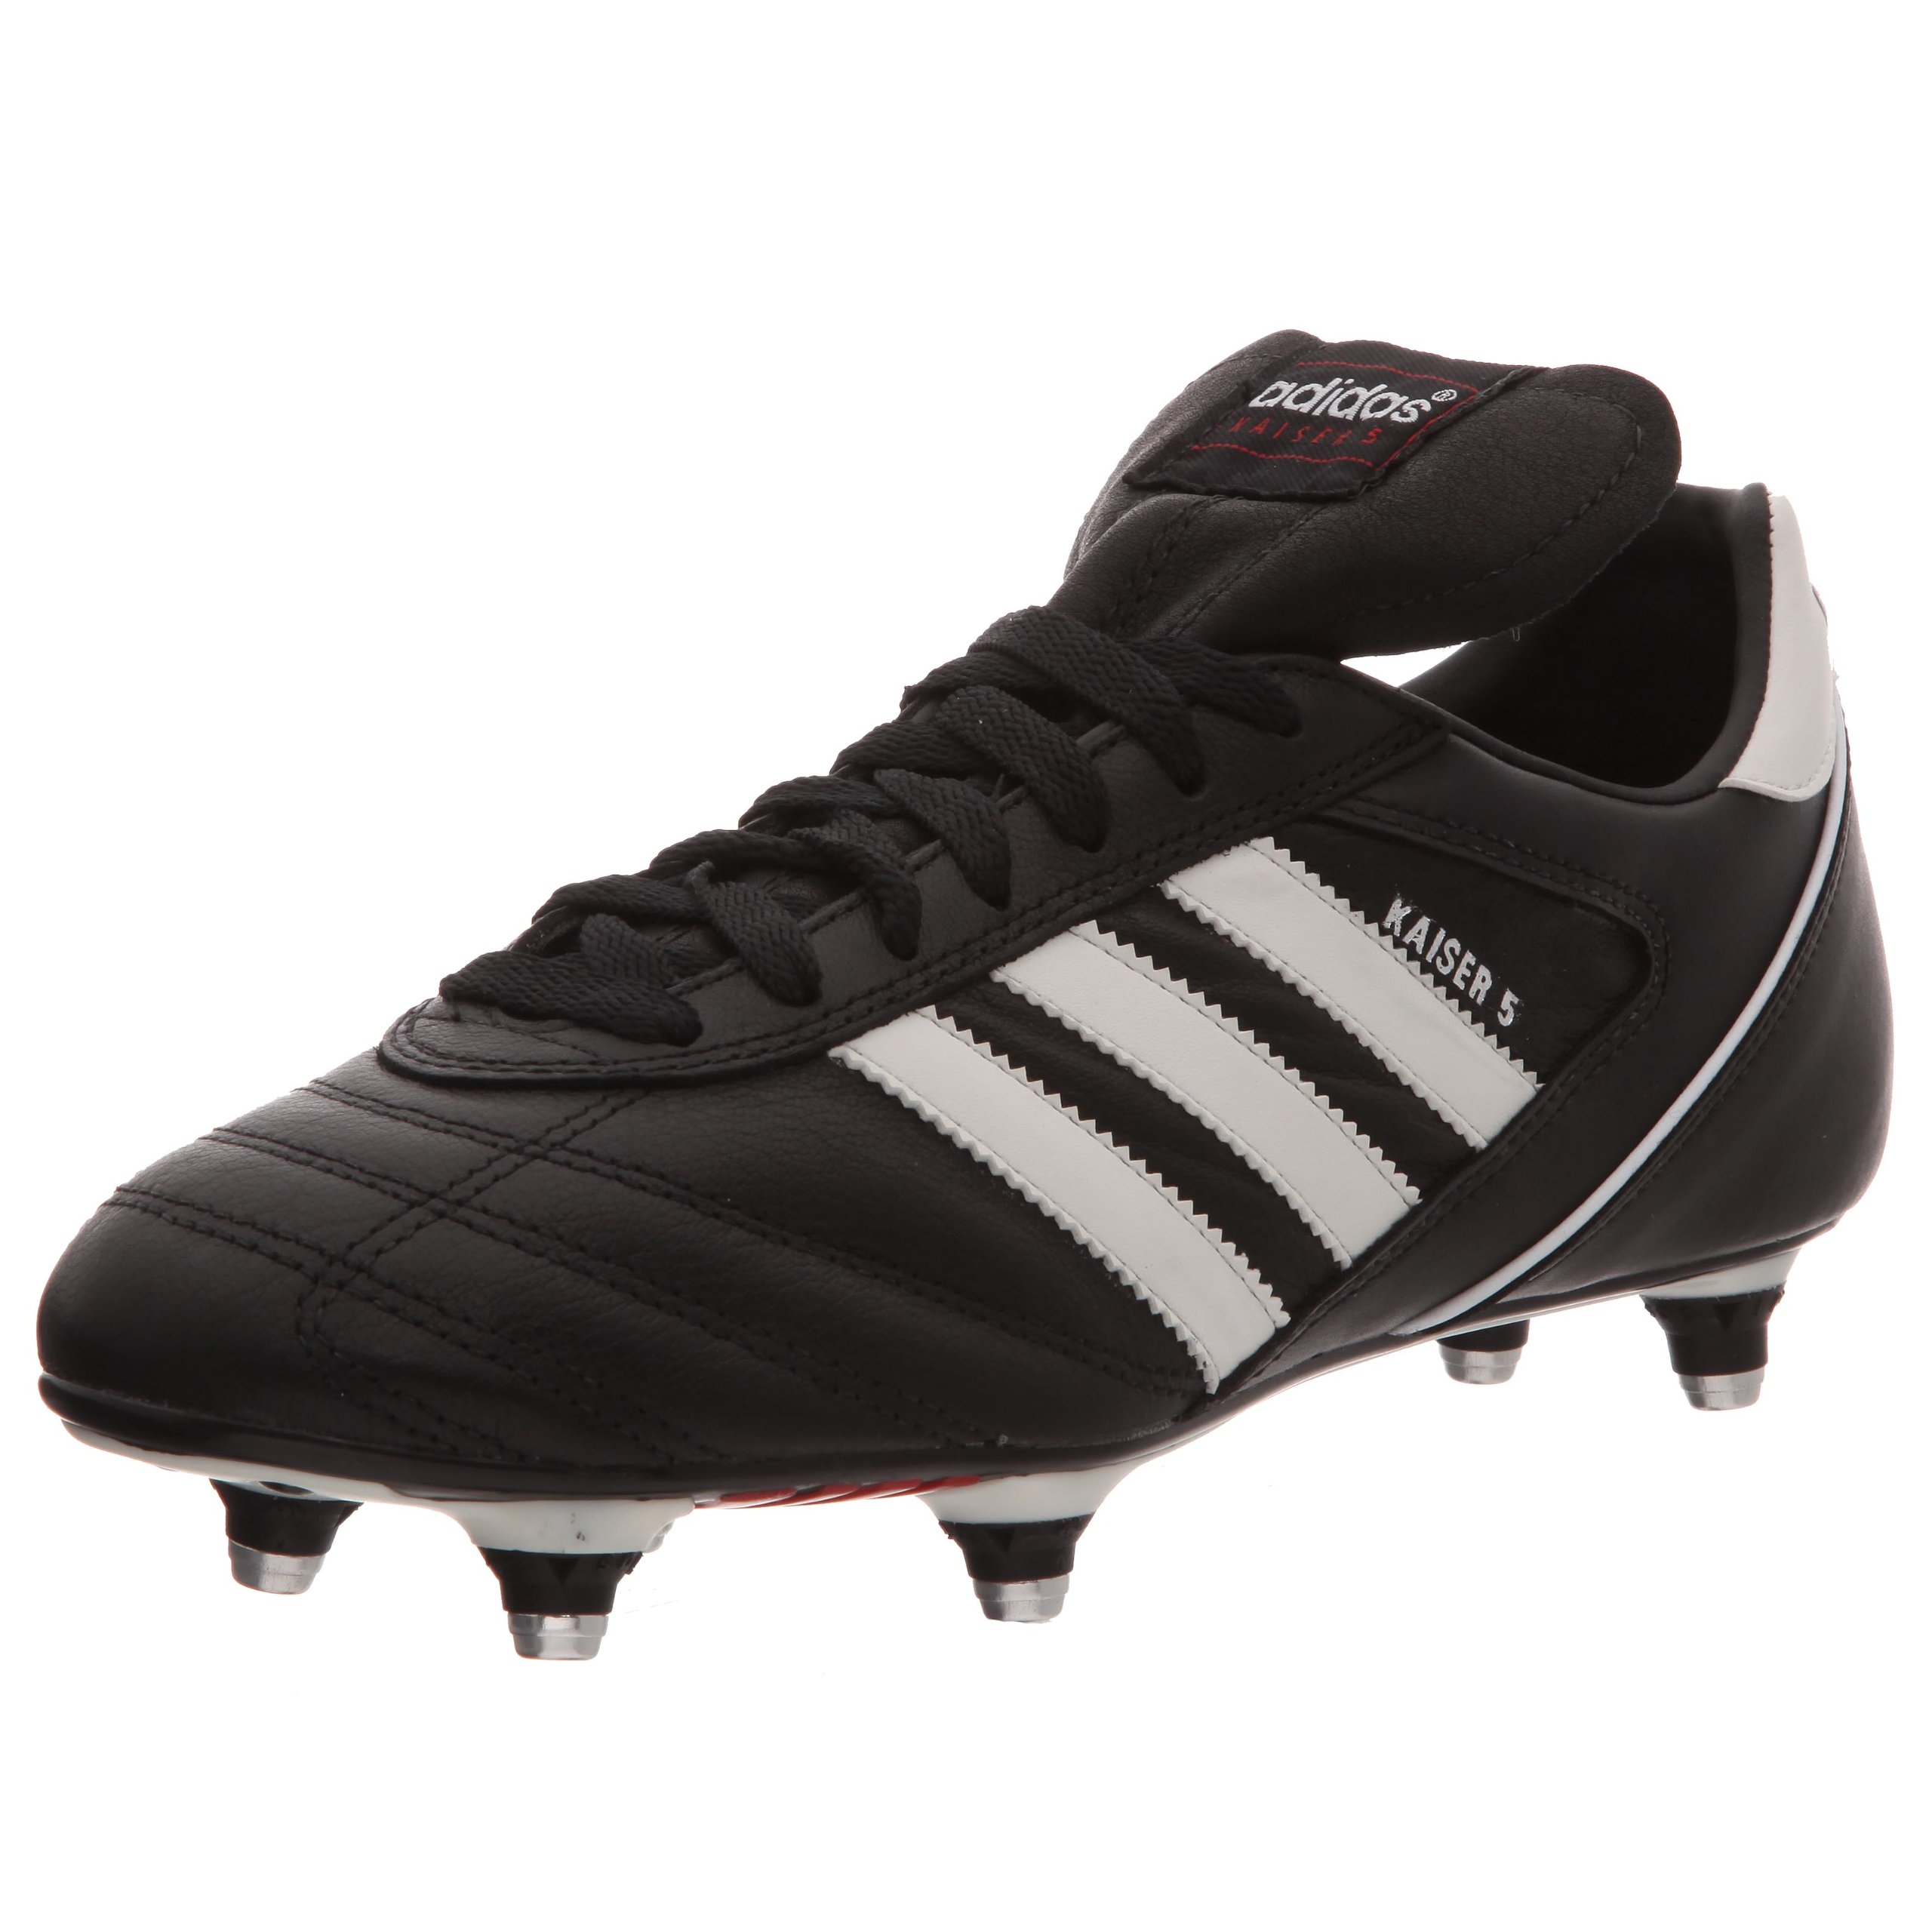 76a4230c884 Best Rated in Men's Football Boots & Helpful Customer Reviews ...